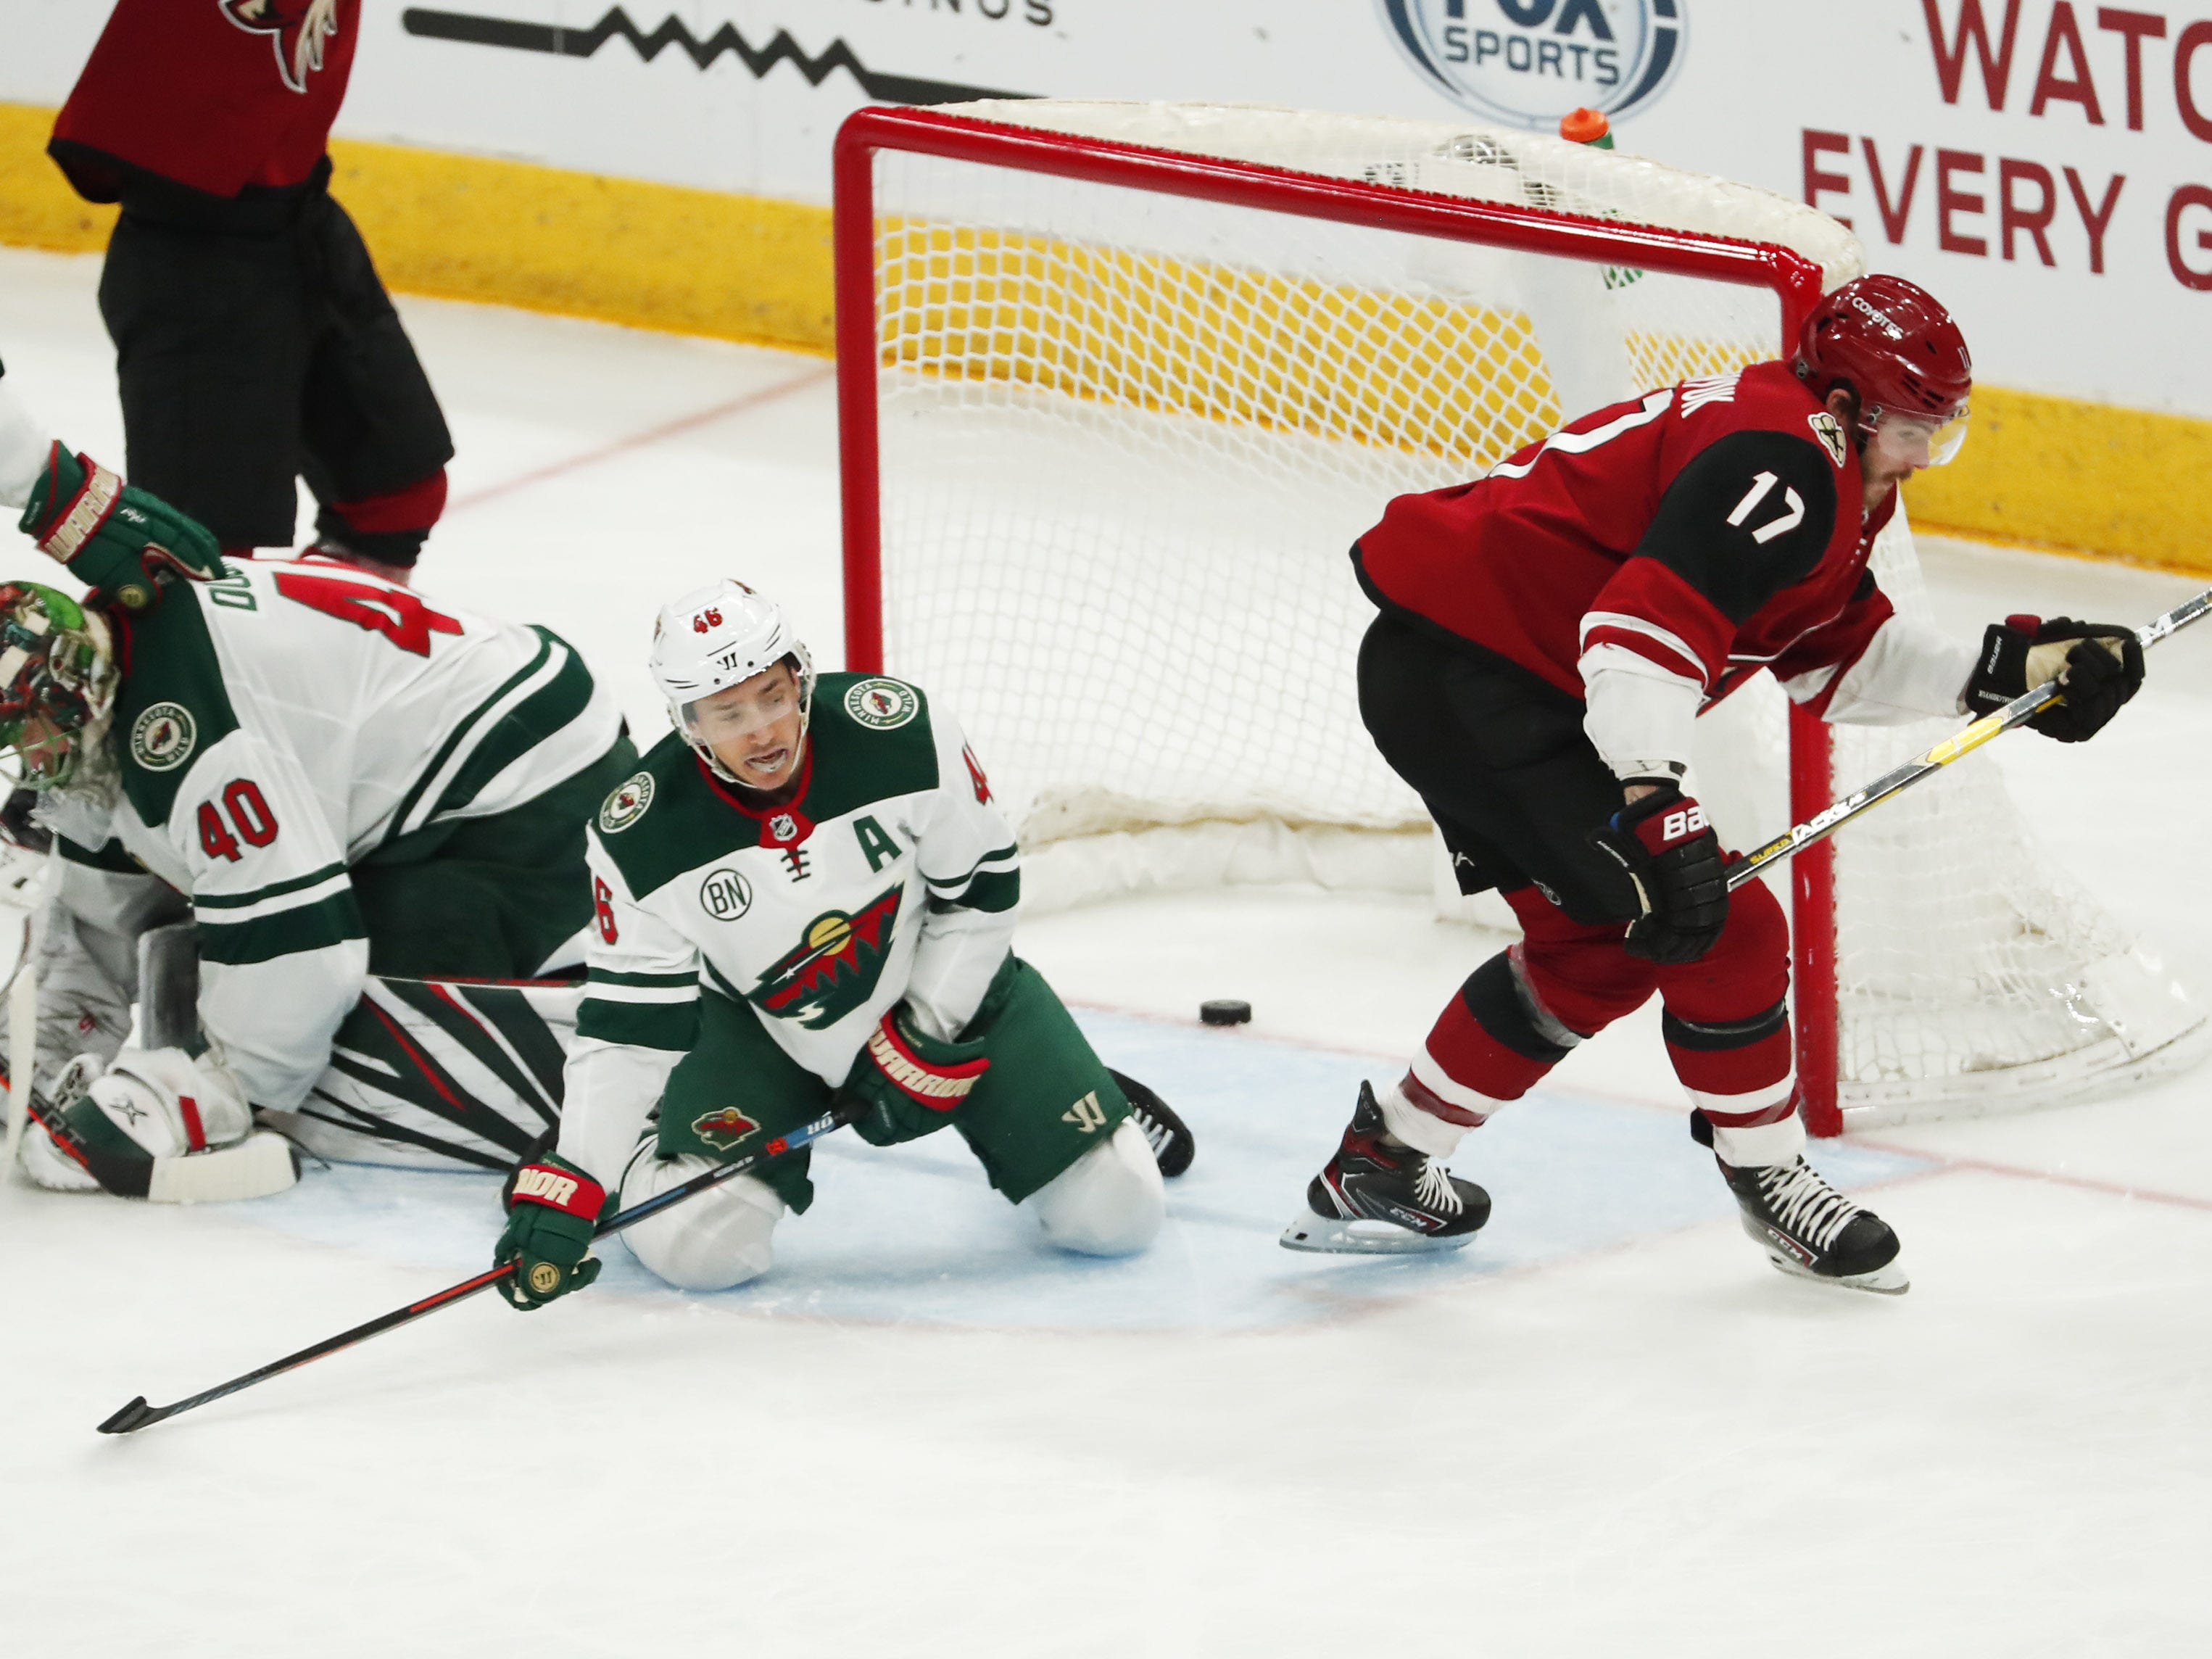 Arizona Coyotes center Alex Galchenyuk (17) scores against the Minnesota Wild during the first period in Glendale March 31, 2019.